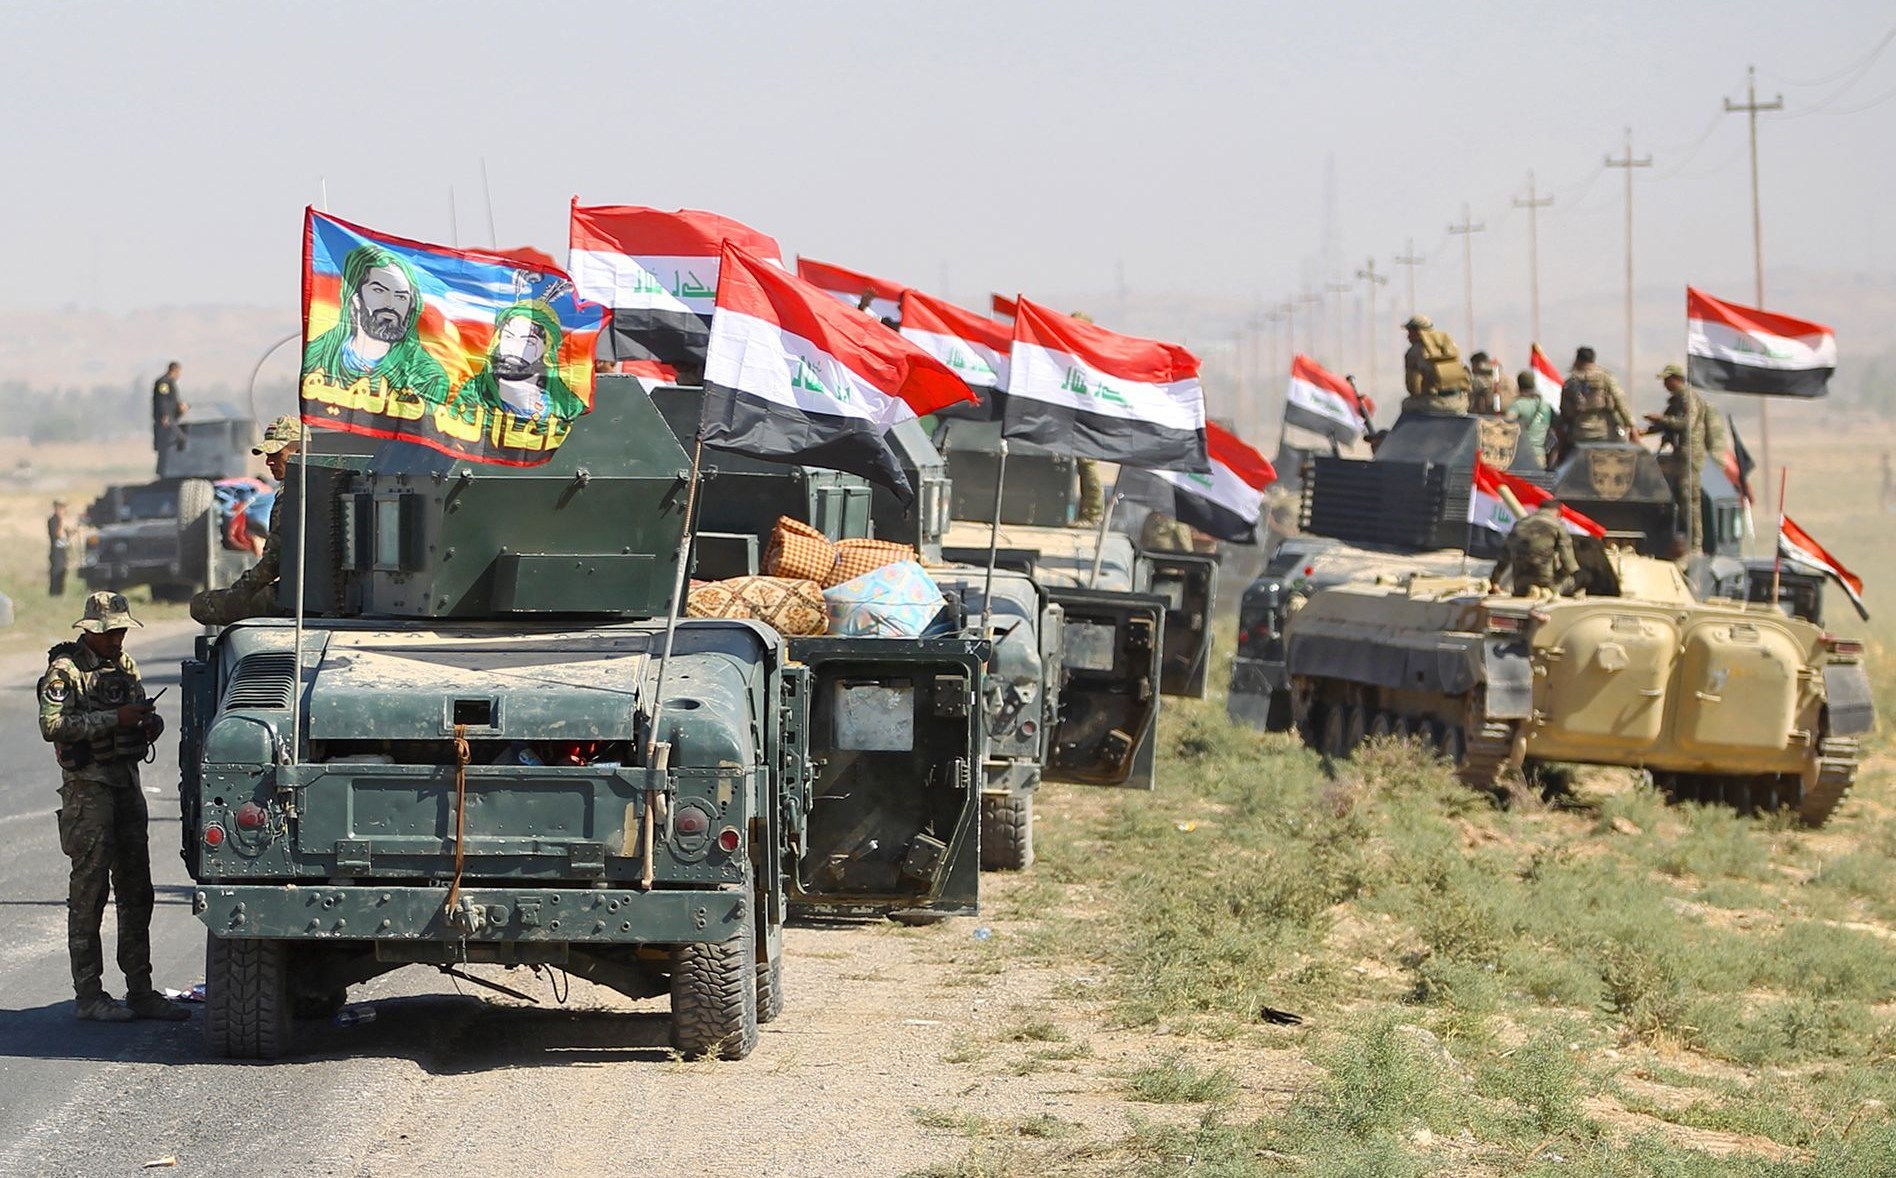 Iraqi troops with religious banners flying atop their vehicles advancing on Kirkuk, Oct. 2017. Photo AFP